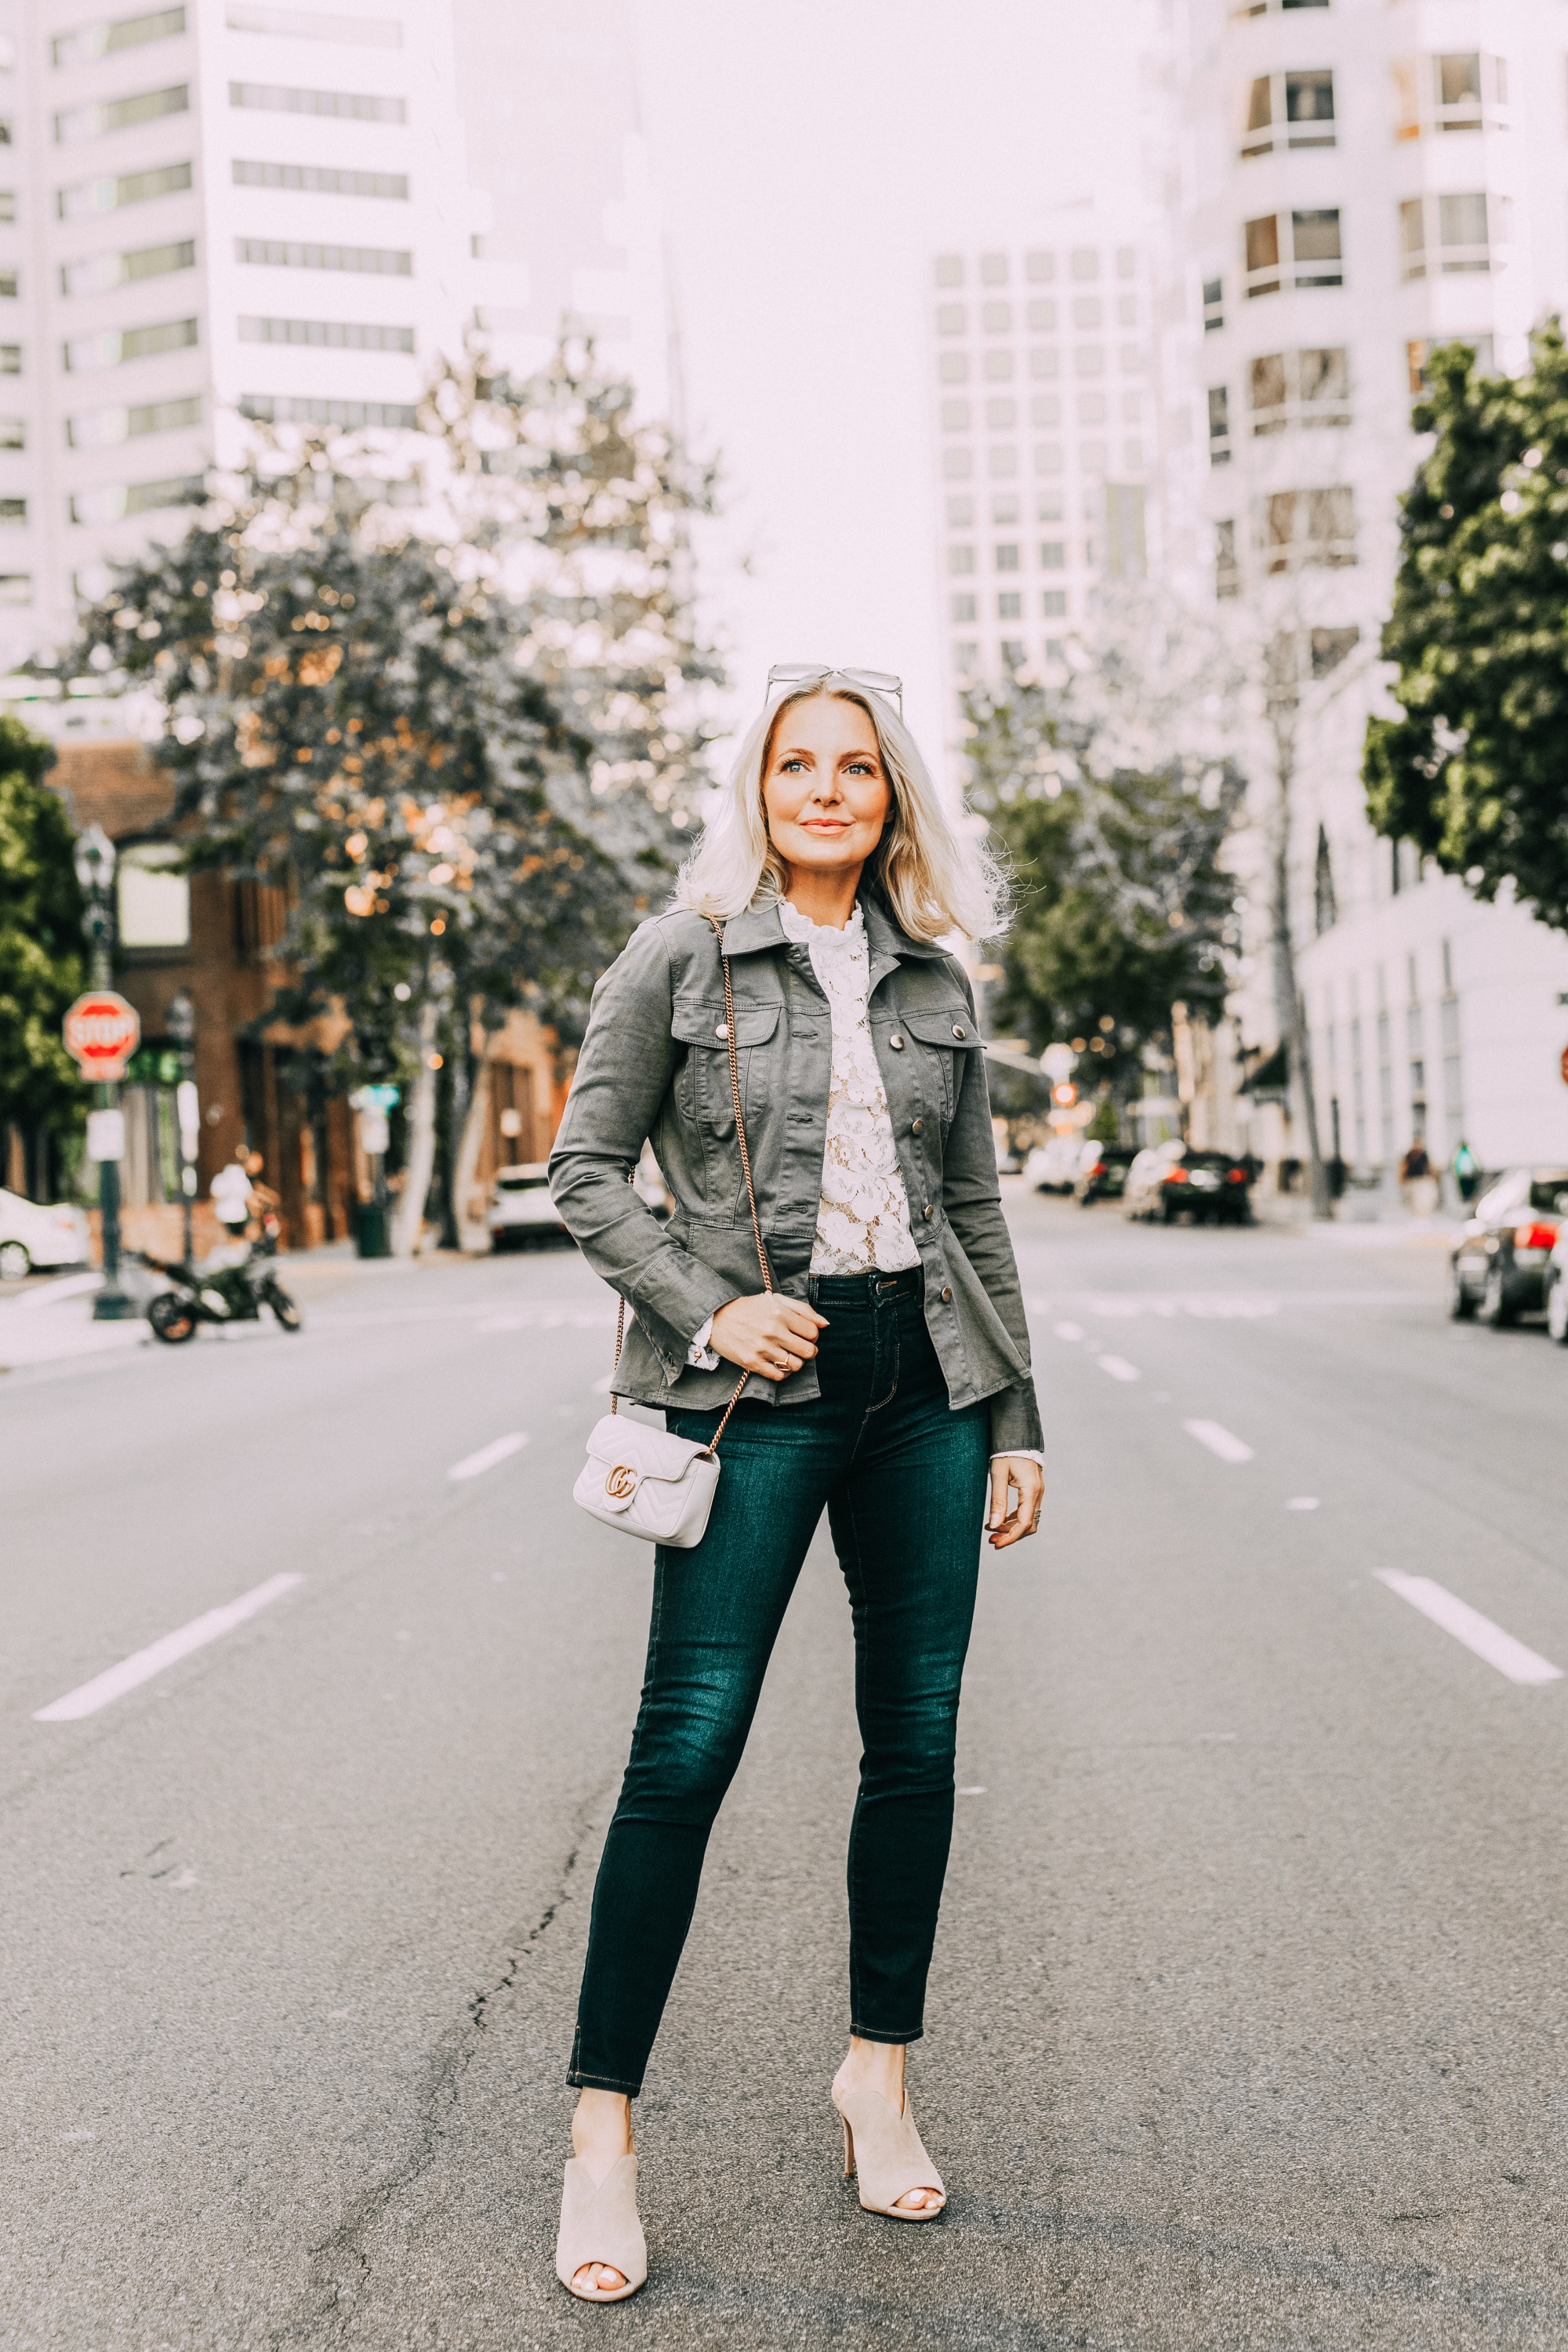 White Top Under $100, Fashion blogger Erin Busbee of BusbeeStyle.com wearing a white lace top by WAYF with dark wash skinny jeans by L'AGENCE, neutral Vince Camuto peep-toe mules, a white mini Gucci bag, and green peplum Frame jacket in San Diego, California